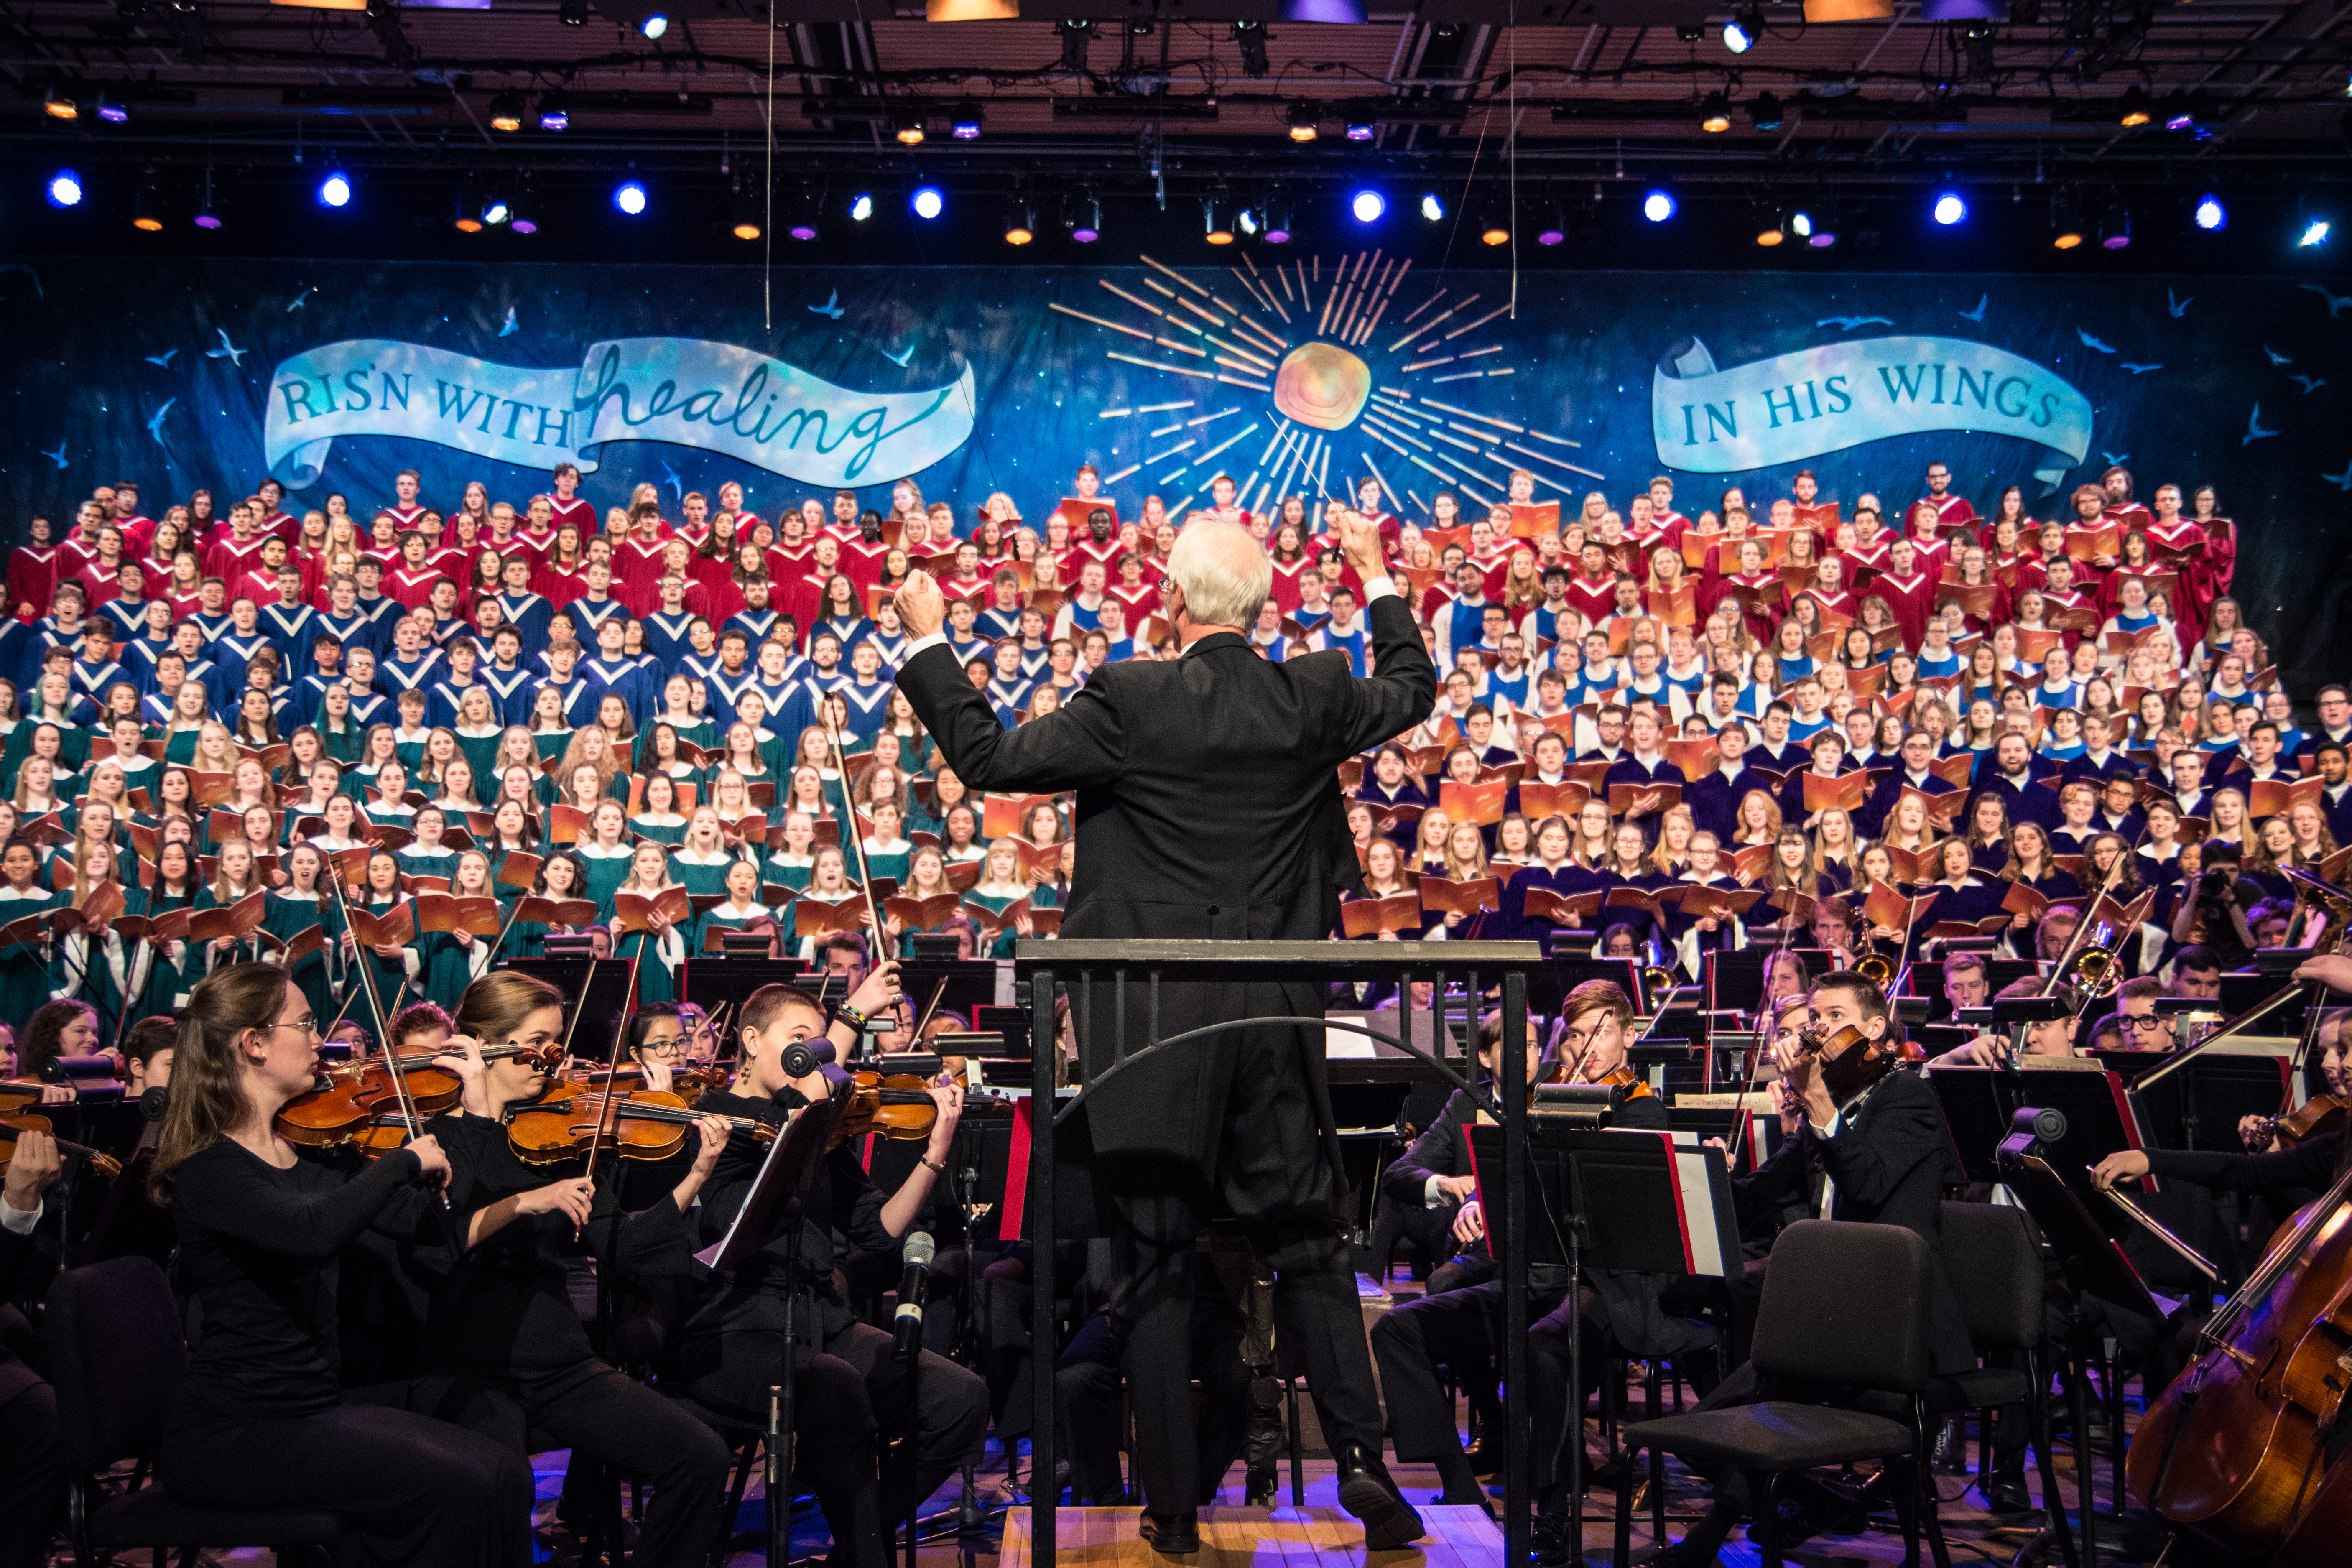 Celebrating the Christmas season with choral music